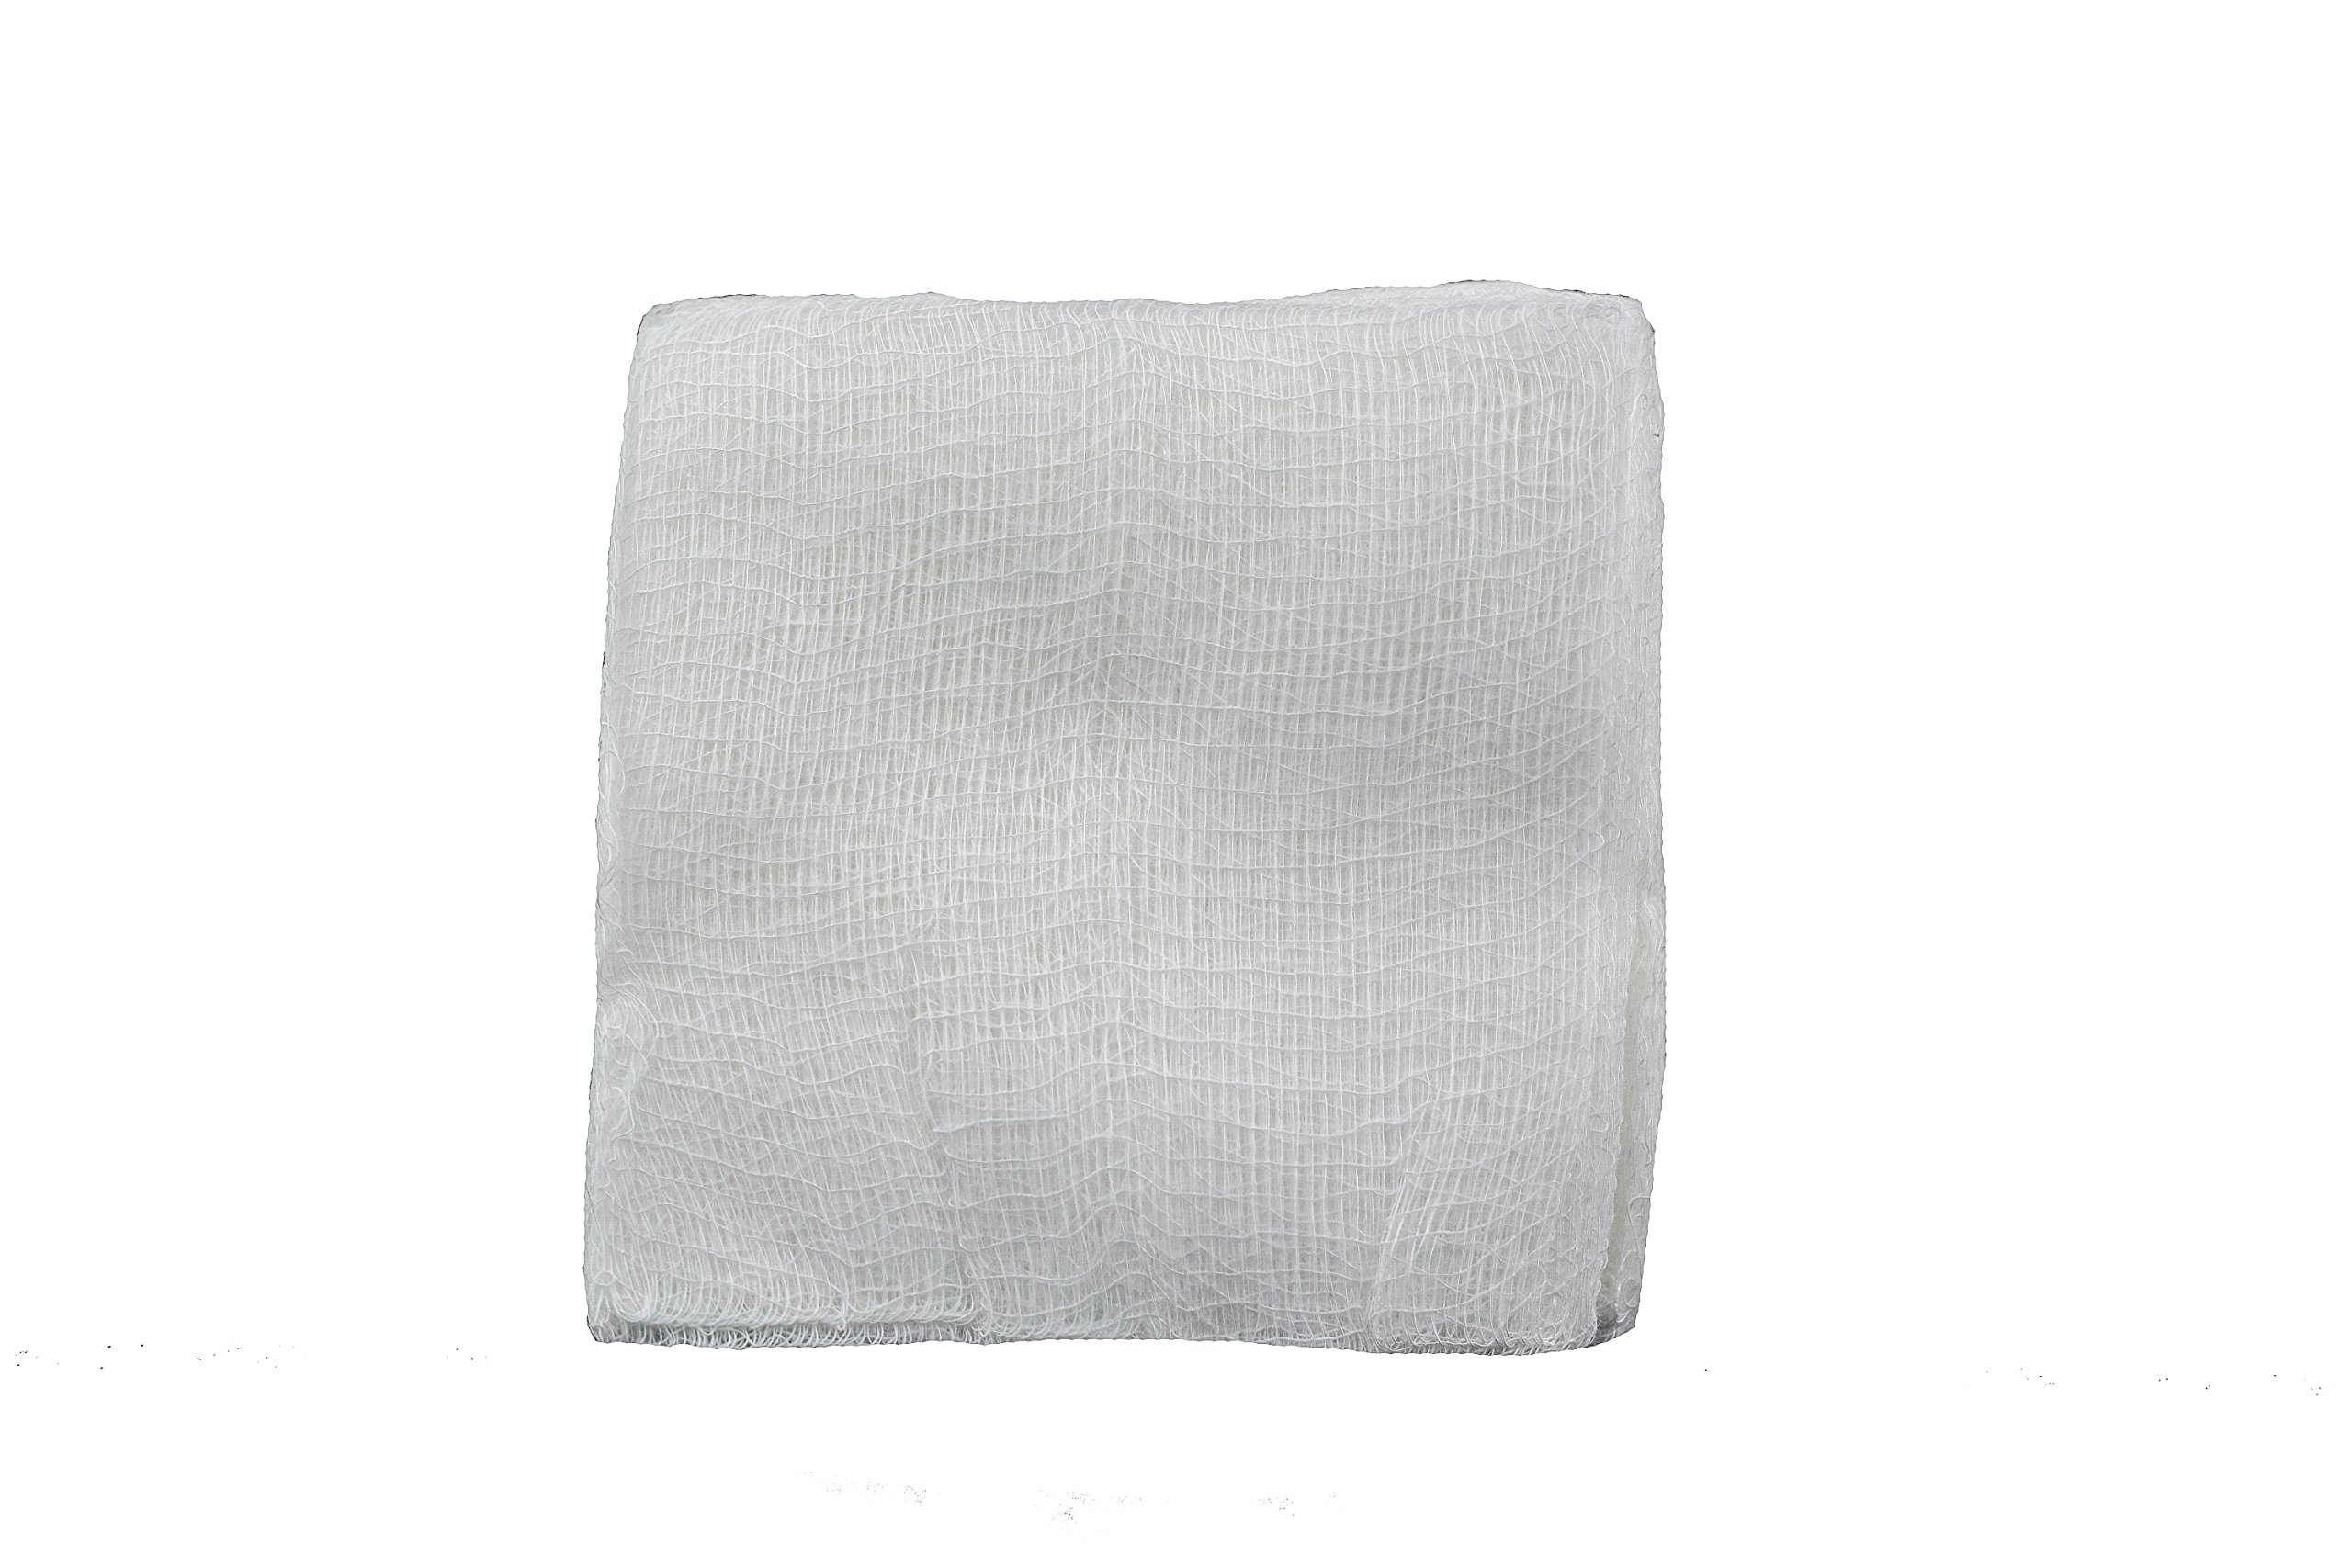 Gauze Surgical Sponges Cotton Non Sterile Non Woven 8-ply High Grade Quality by P&P Medical Surgical 4''x4'' Class I(a) All Purpose Pads (5000) by P&P Medical Surgical